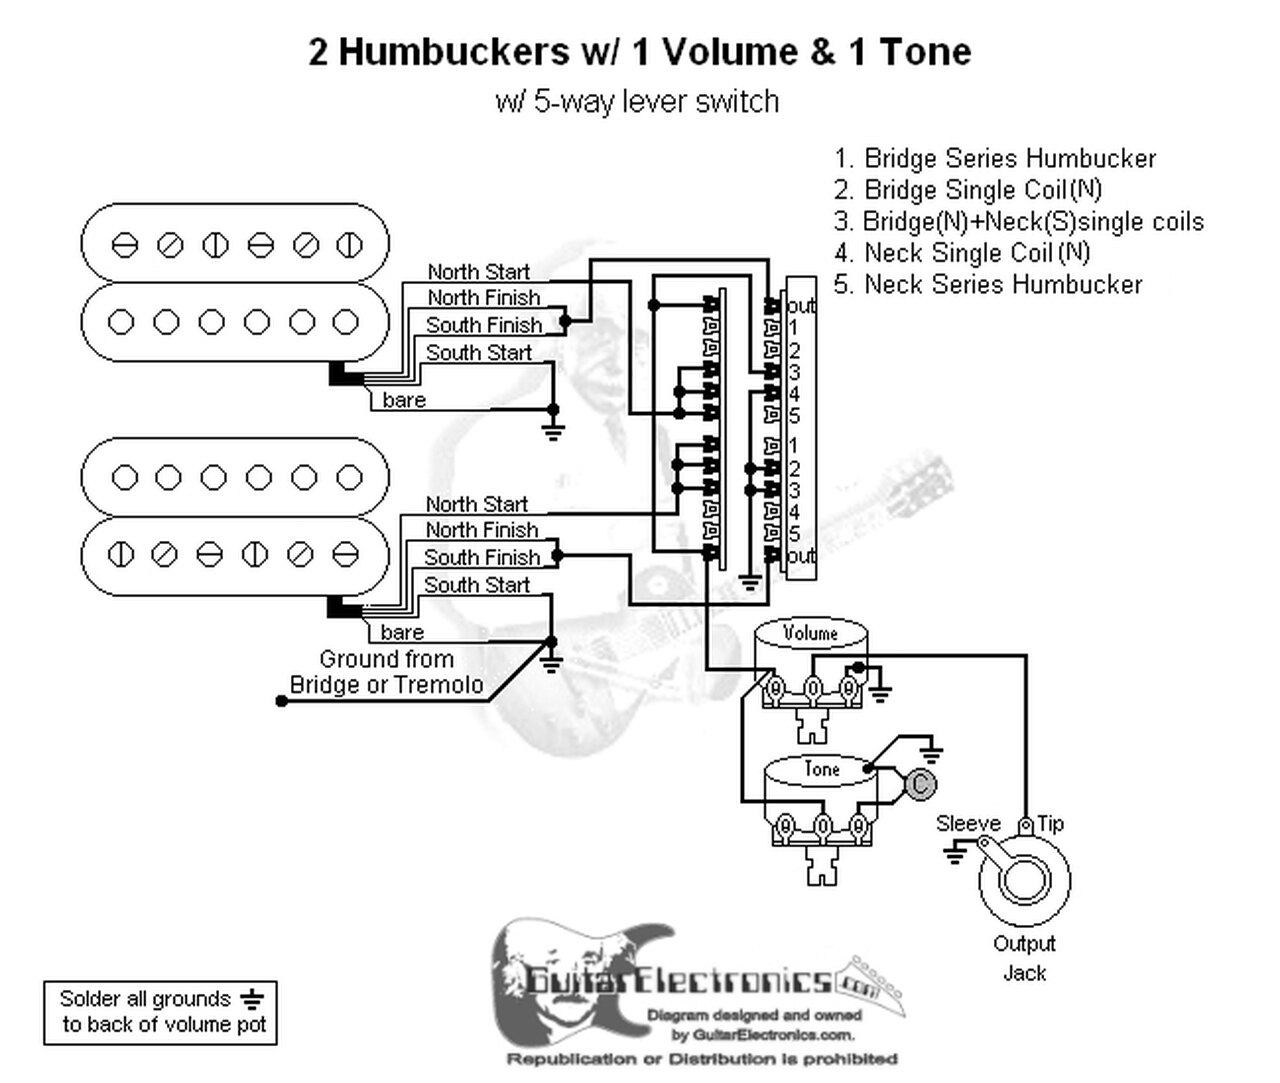 TL_6328] Wiring Diagram 2 Humbuckers 5Way Rotary Switch 1 Volume 1 Tone 05 Wiring  Diagram | Guitarheads Wiring Diagram |  | Stap Egre Mohammedshrine Librar Wiring 101